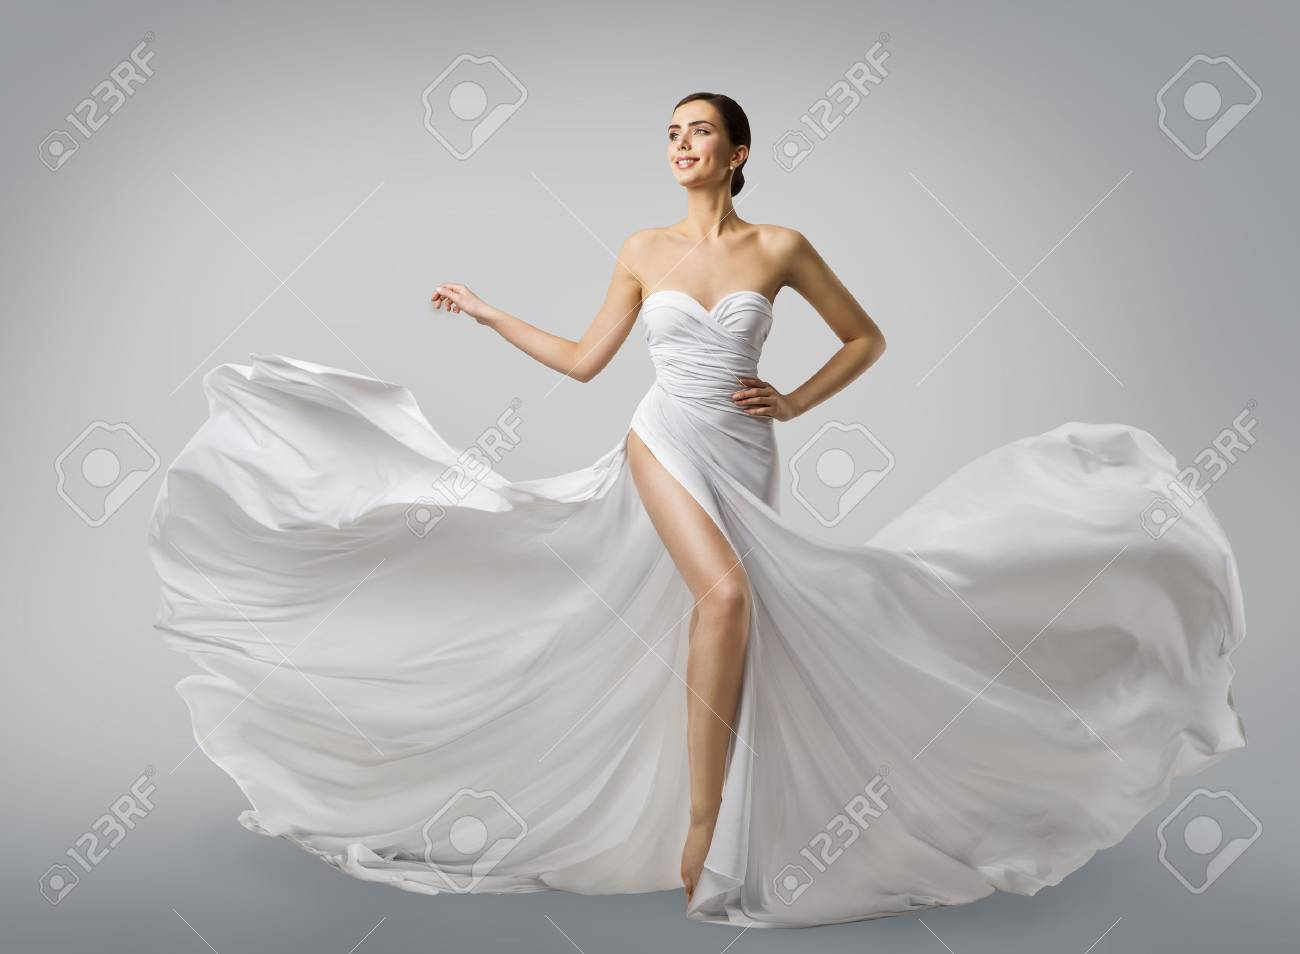 c7460d664 Stock Photo - Woman White Dress, Fashion Model Bride in Long Silk Wedding  Gown, Elegant Flying Fabric, Fluttering Cloth